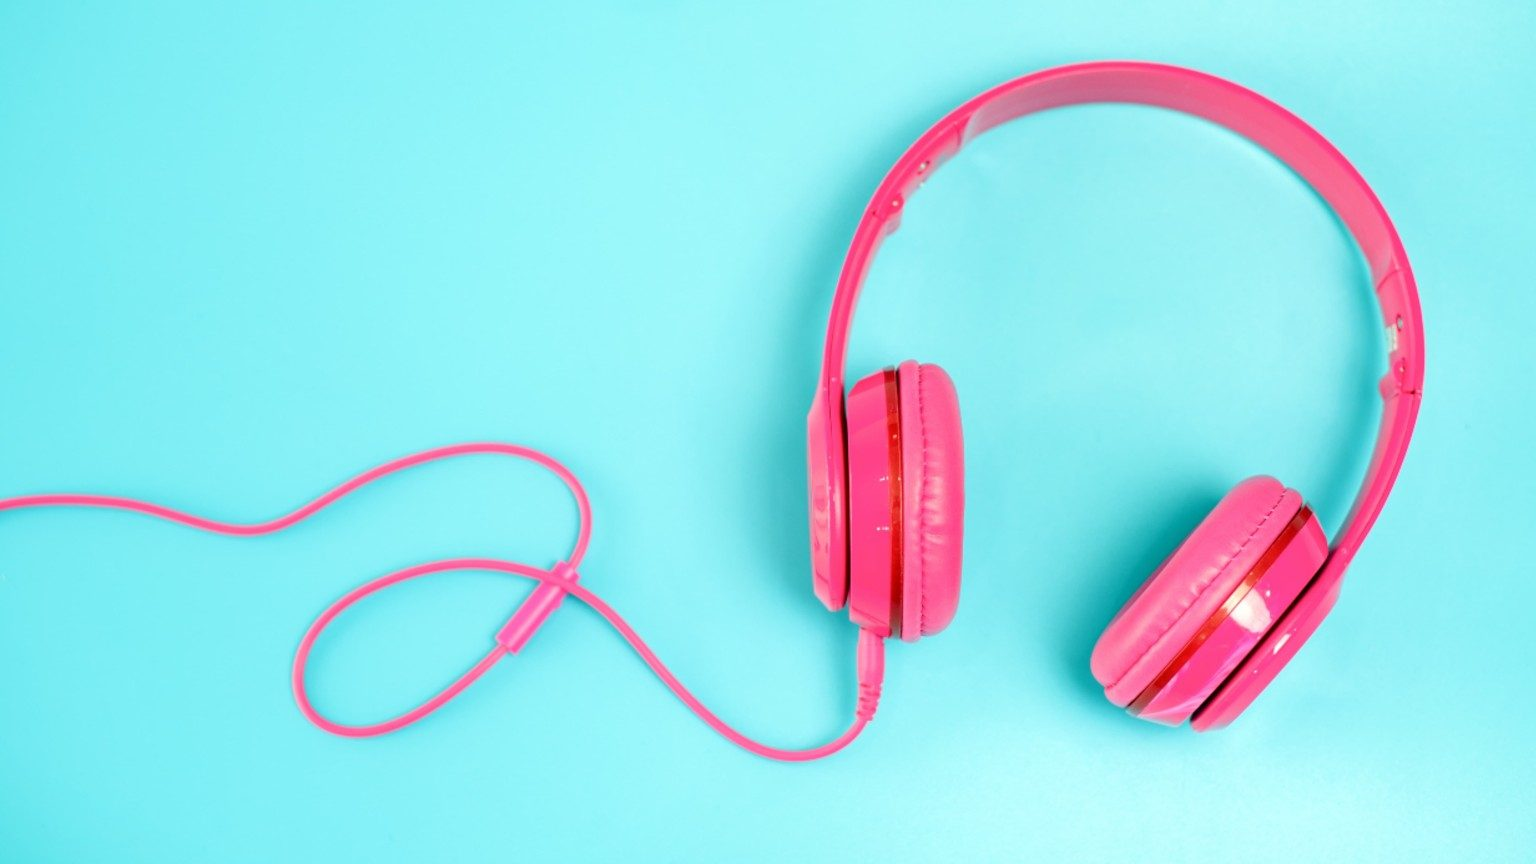 Pink headphone on light with blue background